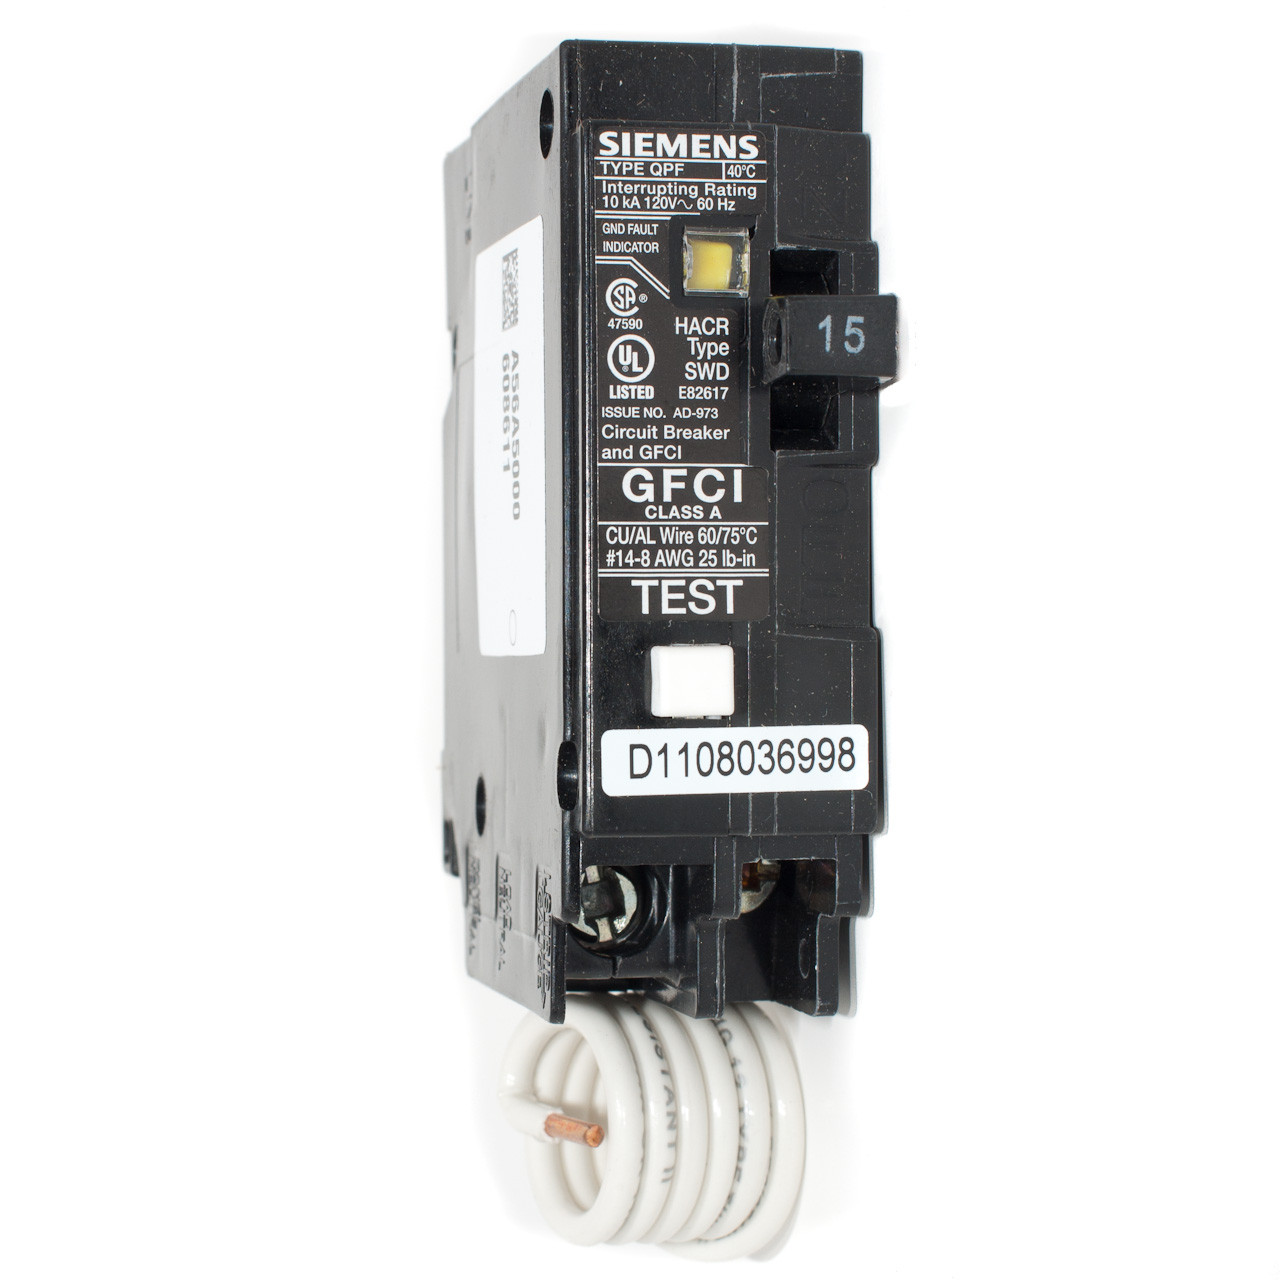 Gfci Circuit Breaker Perfect 220 Volt How To Test A Fine Siemens 15a Single Pole Pushon Throughout